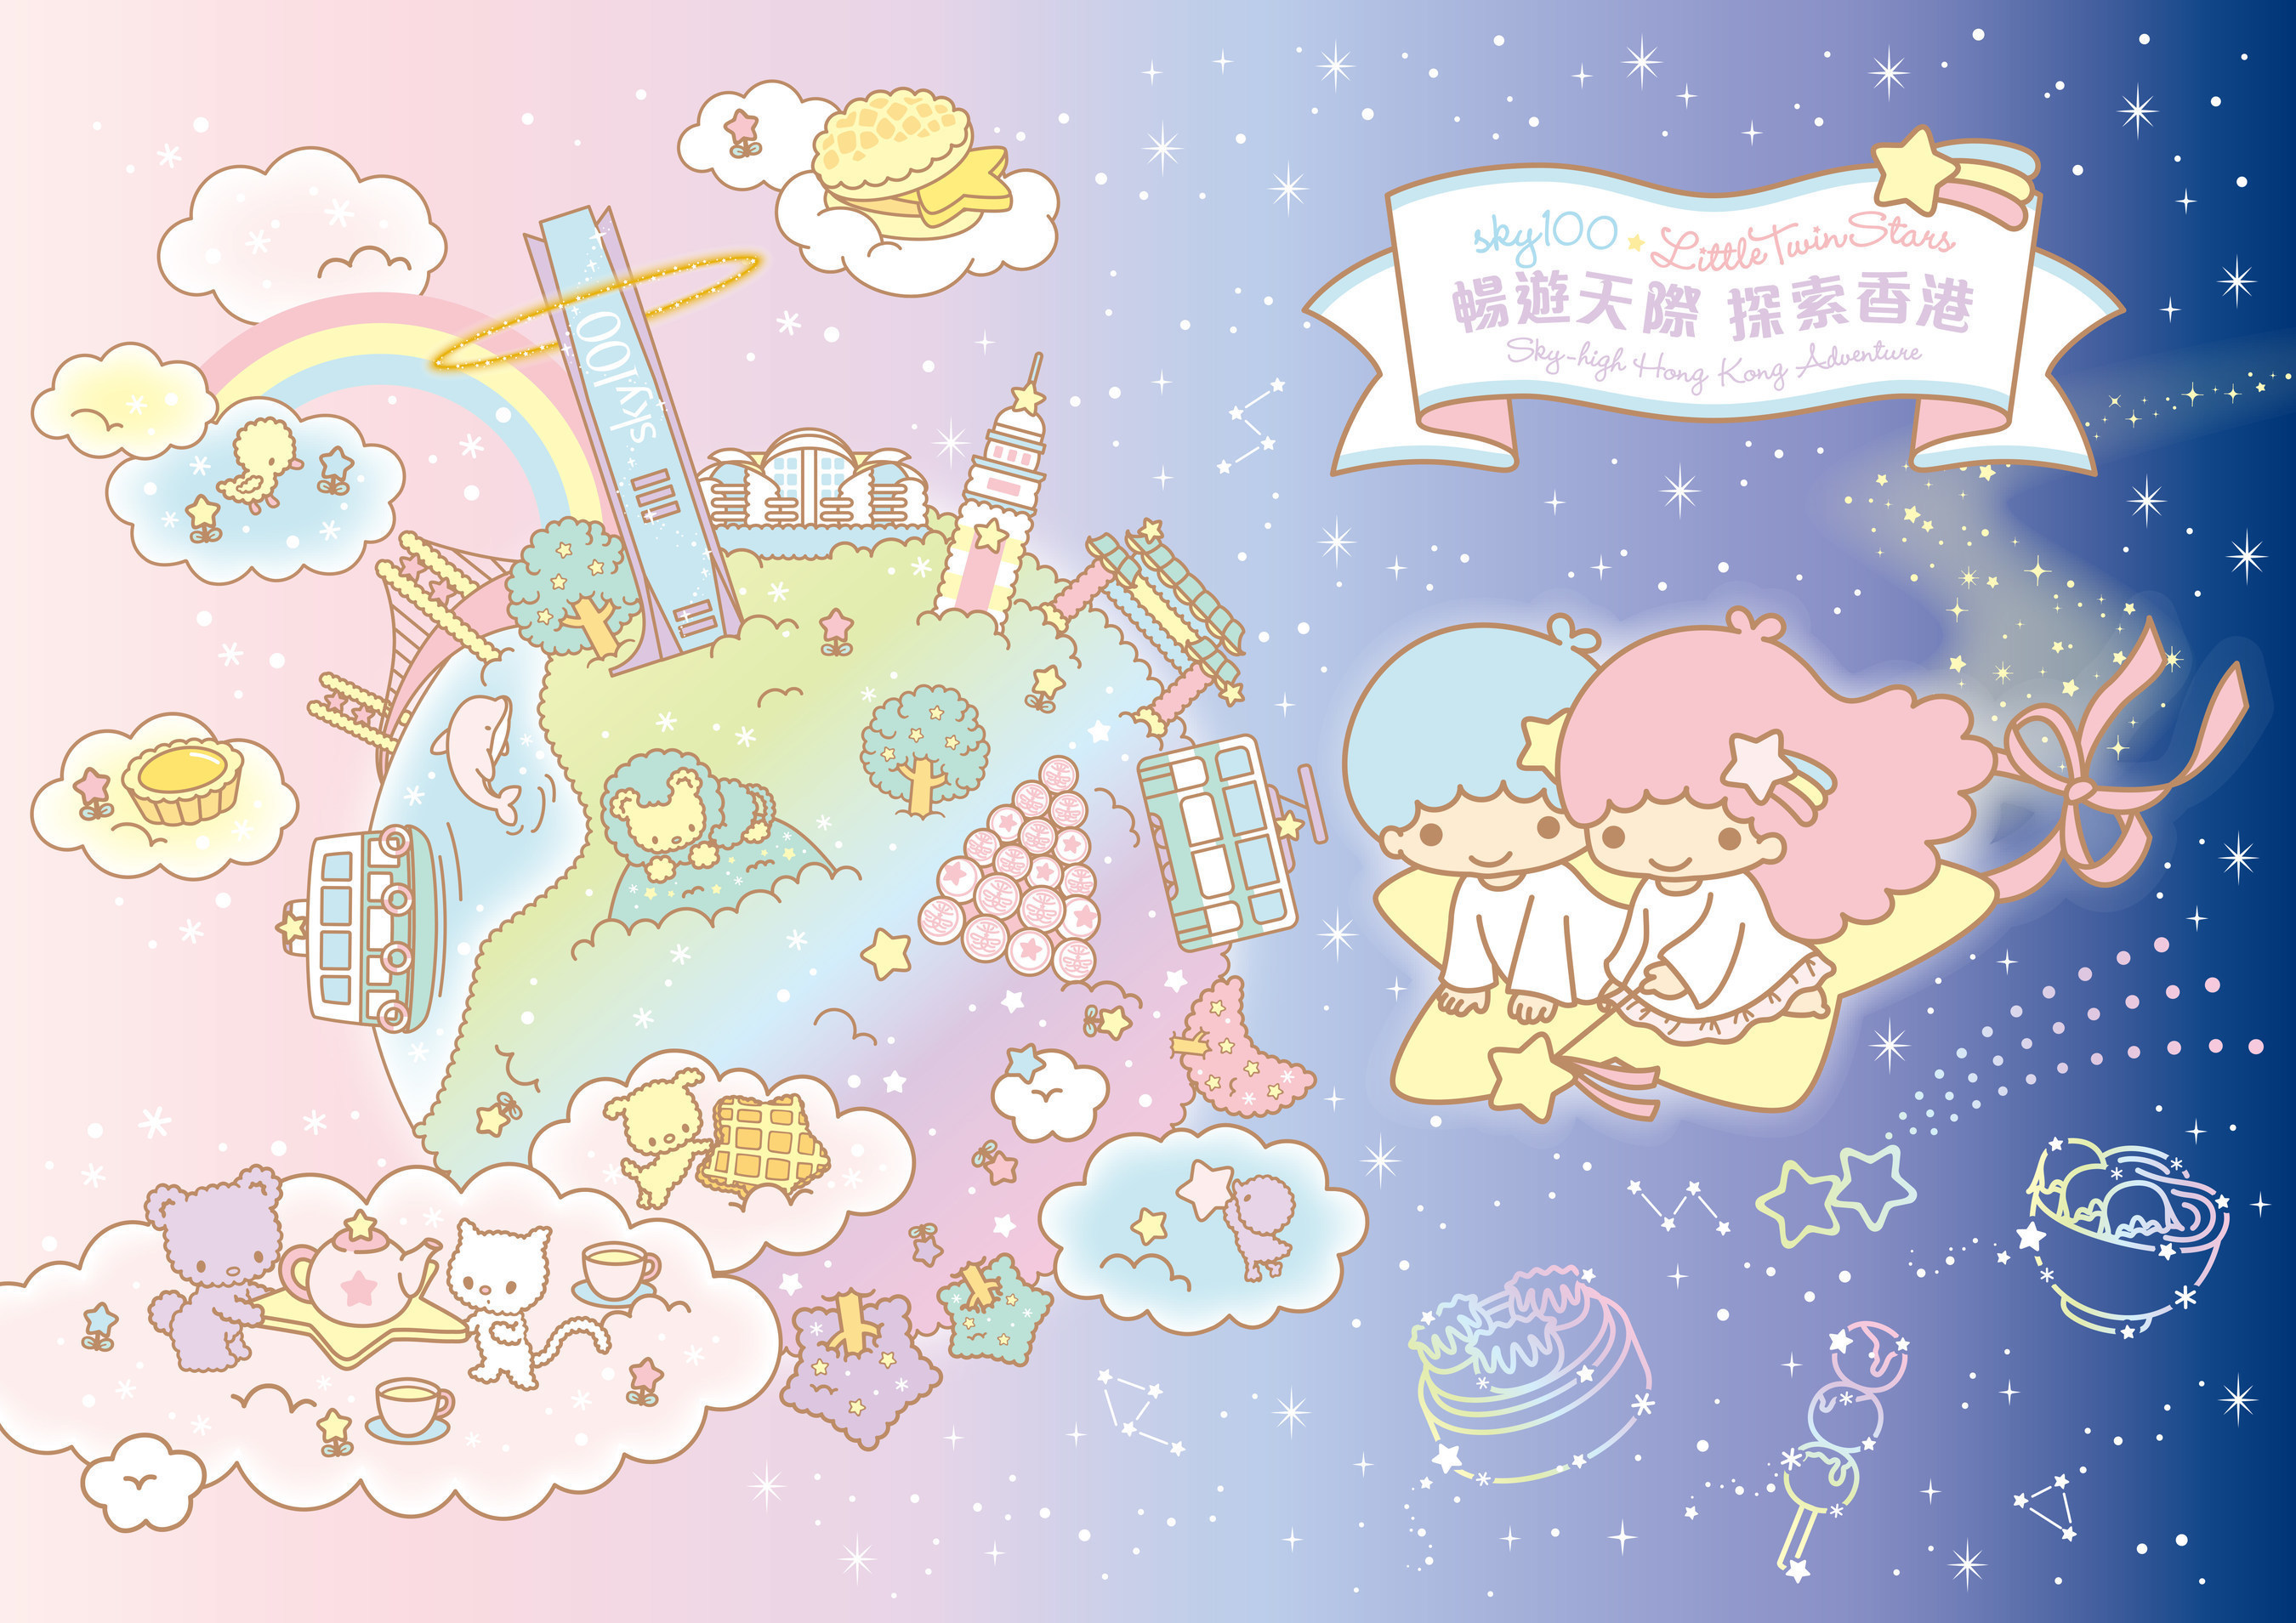 """From 15 July to 23 August, visitors can also join the exciting new """"sky100-Little Twin Stars Sky-high Hong Kong Adventure""""."""